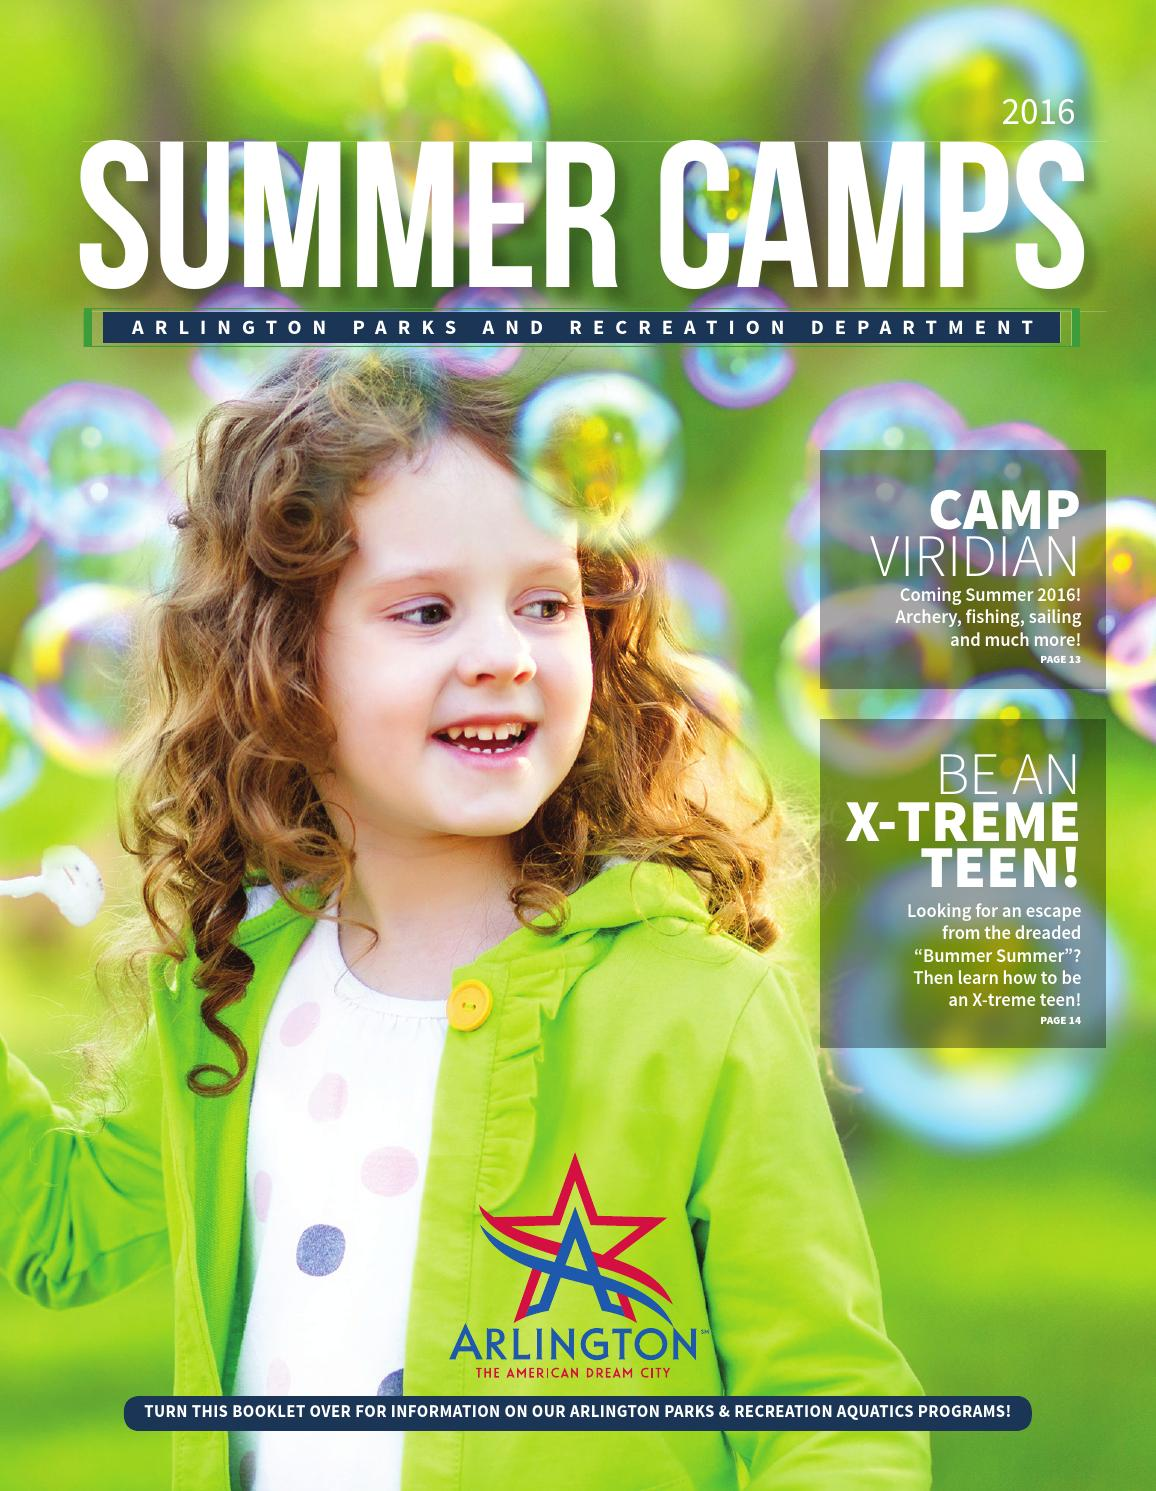 summer camp guide by arlington parks and recreation summer camp guide 2016 by arlington parks and recreation department issuu